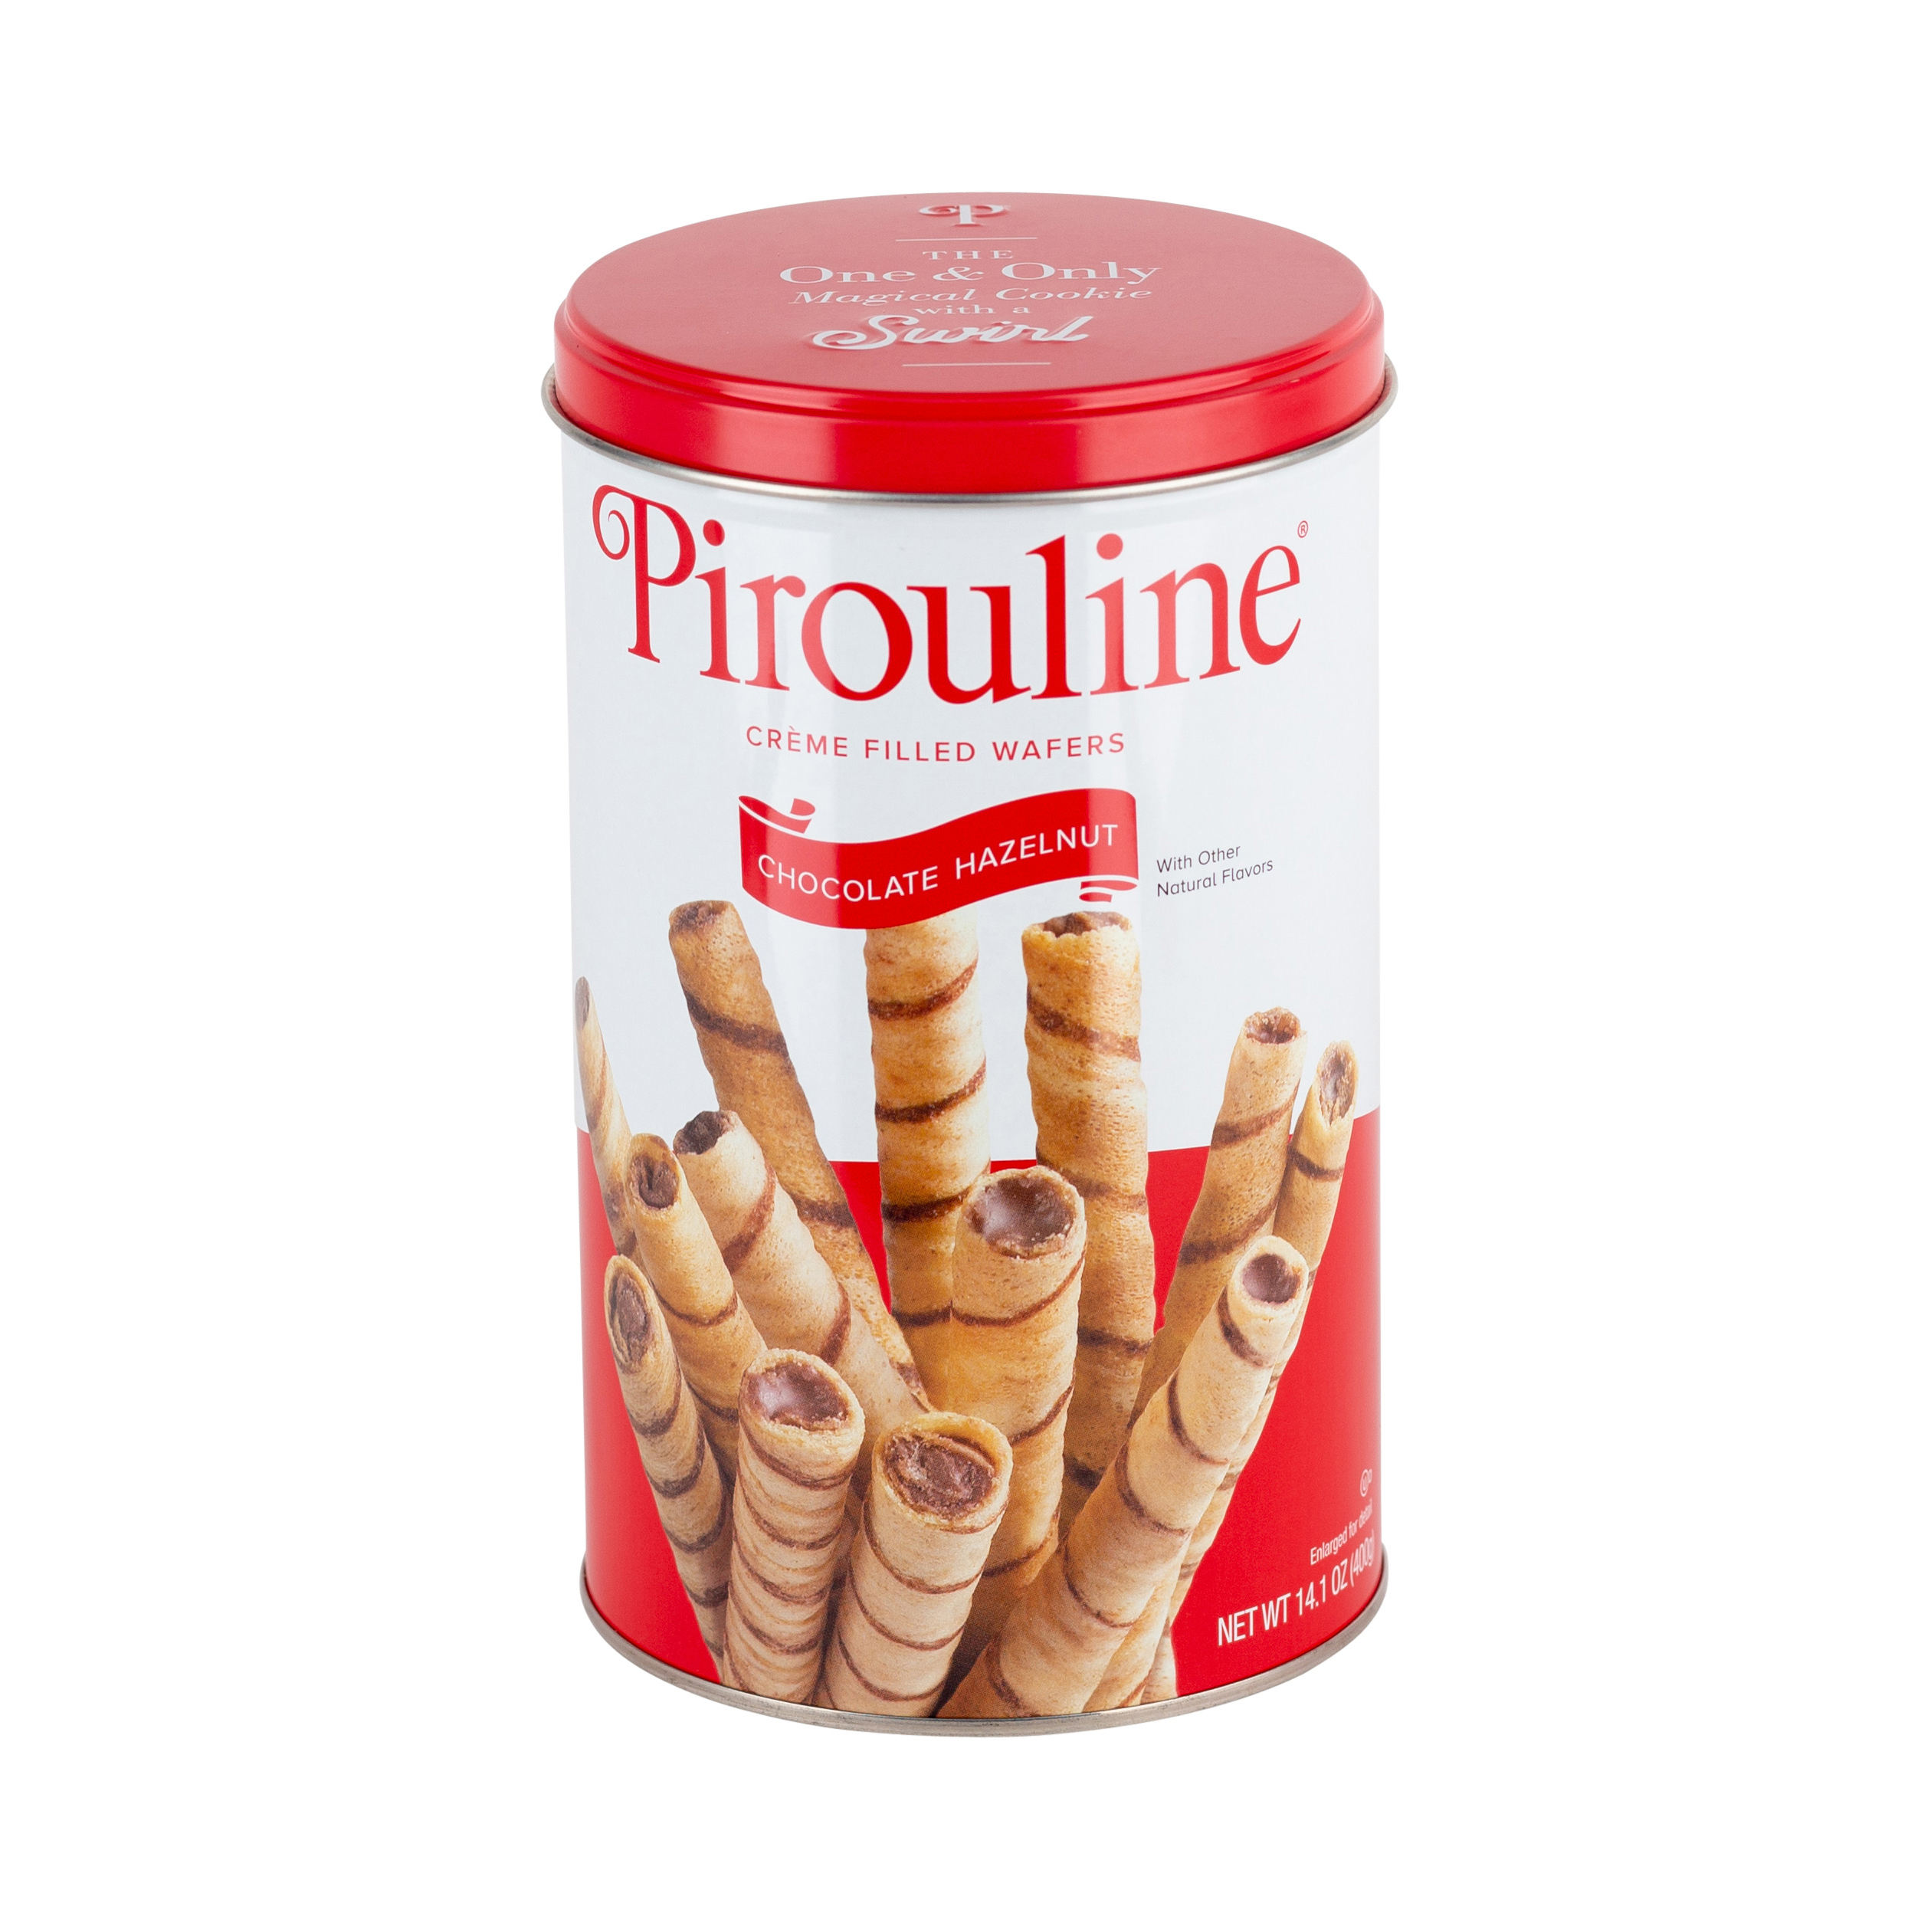 Pirouline barquillo-avellana <span class=keywords><strong>Chocolate</strong></span> relleno <span class=keywords><strong>de</strong></span> crema 14oz Estaño